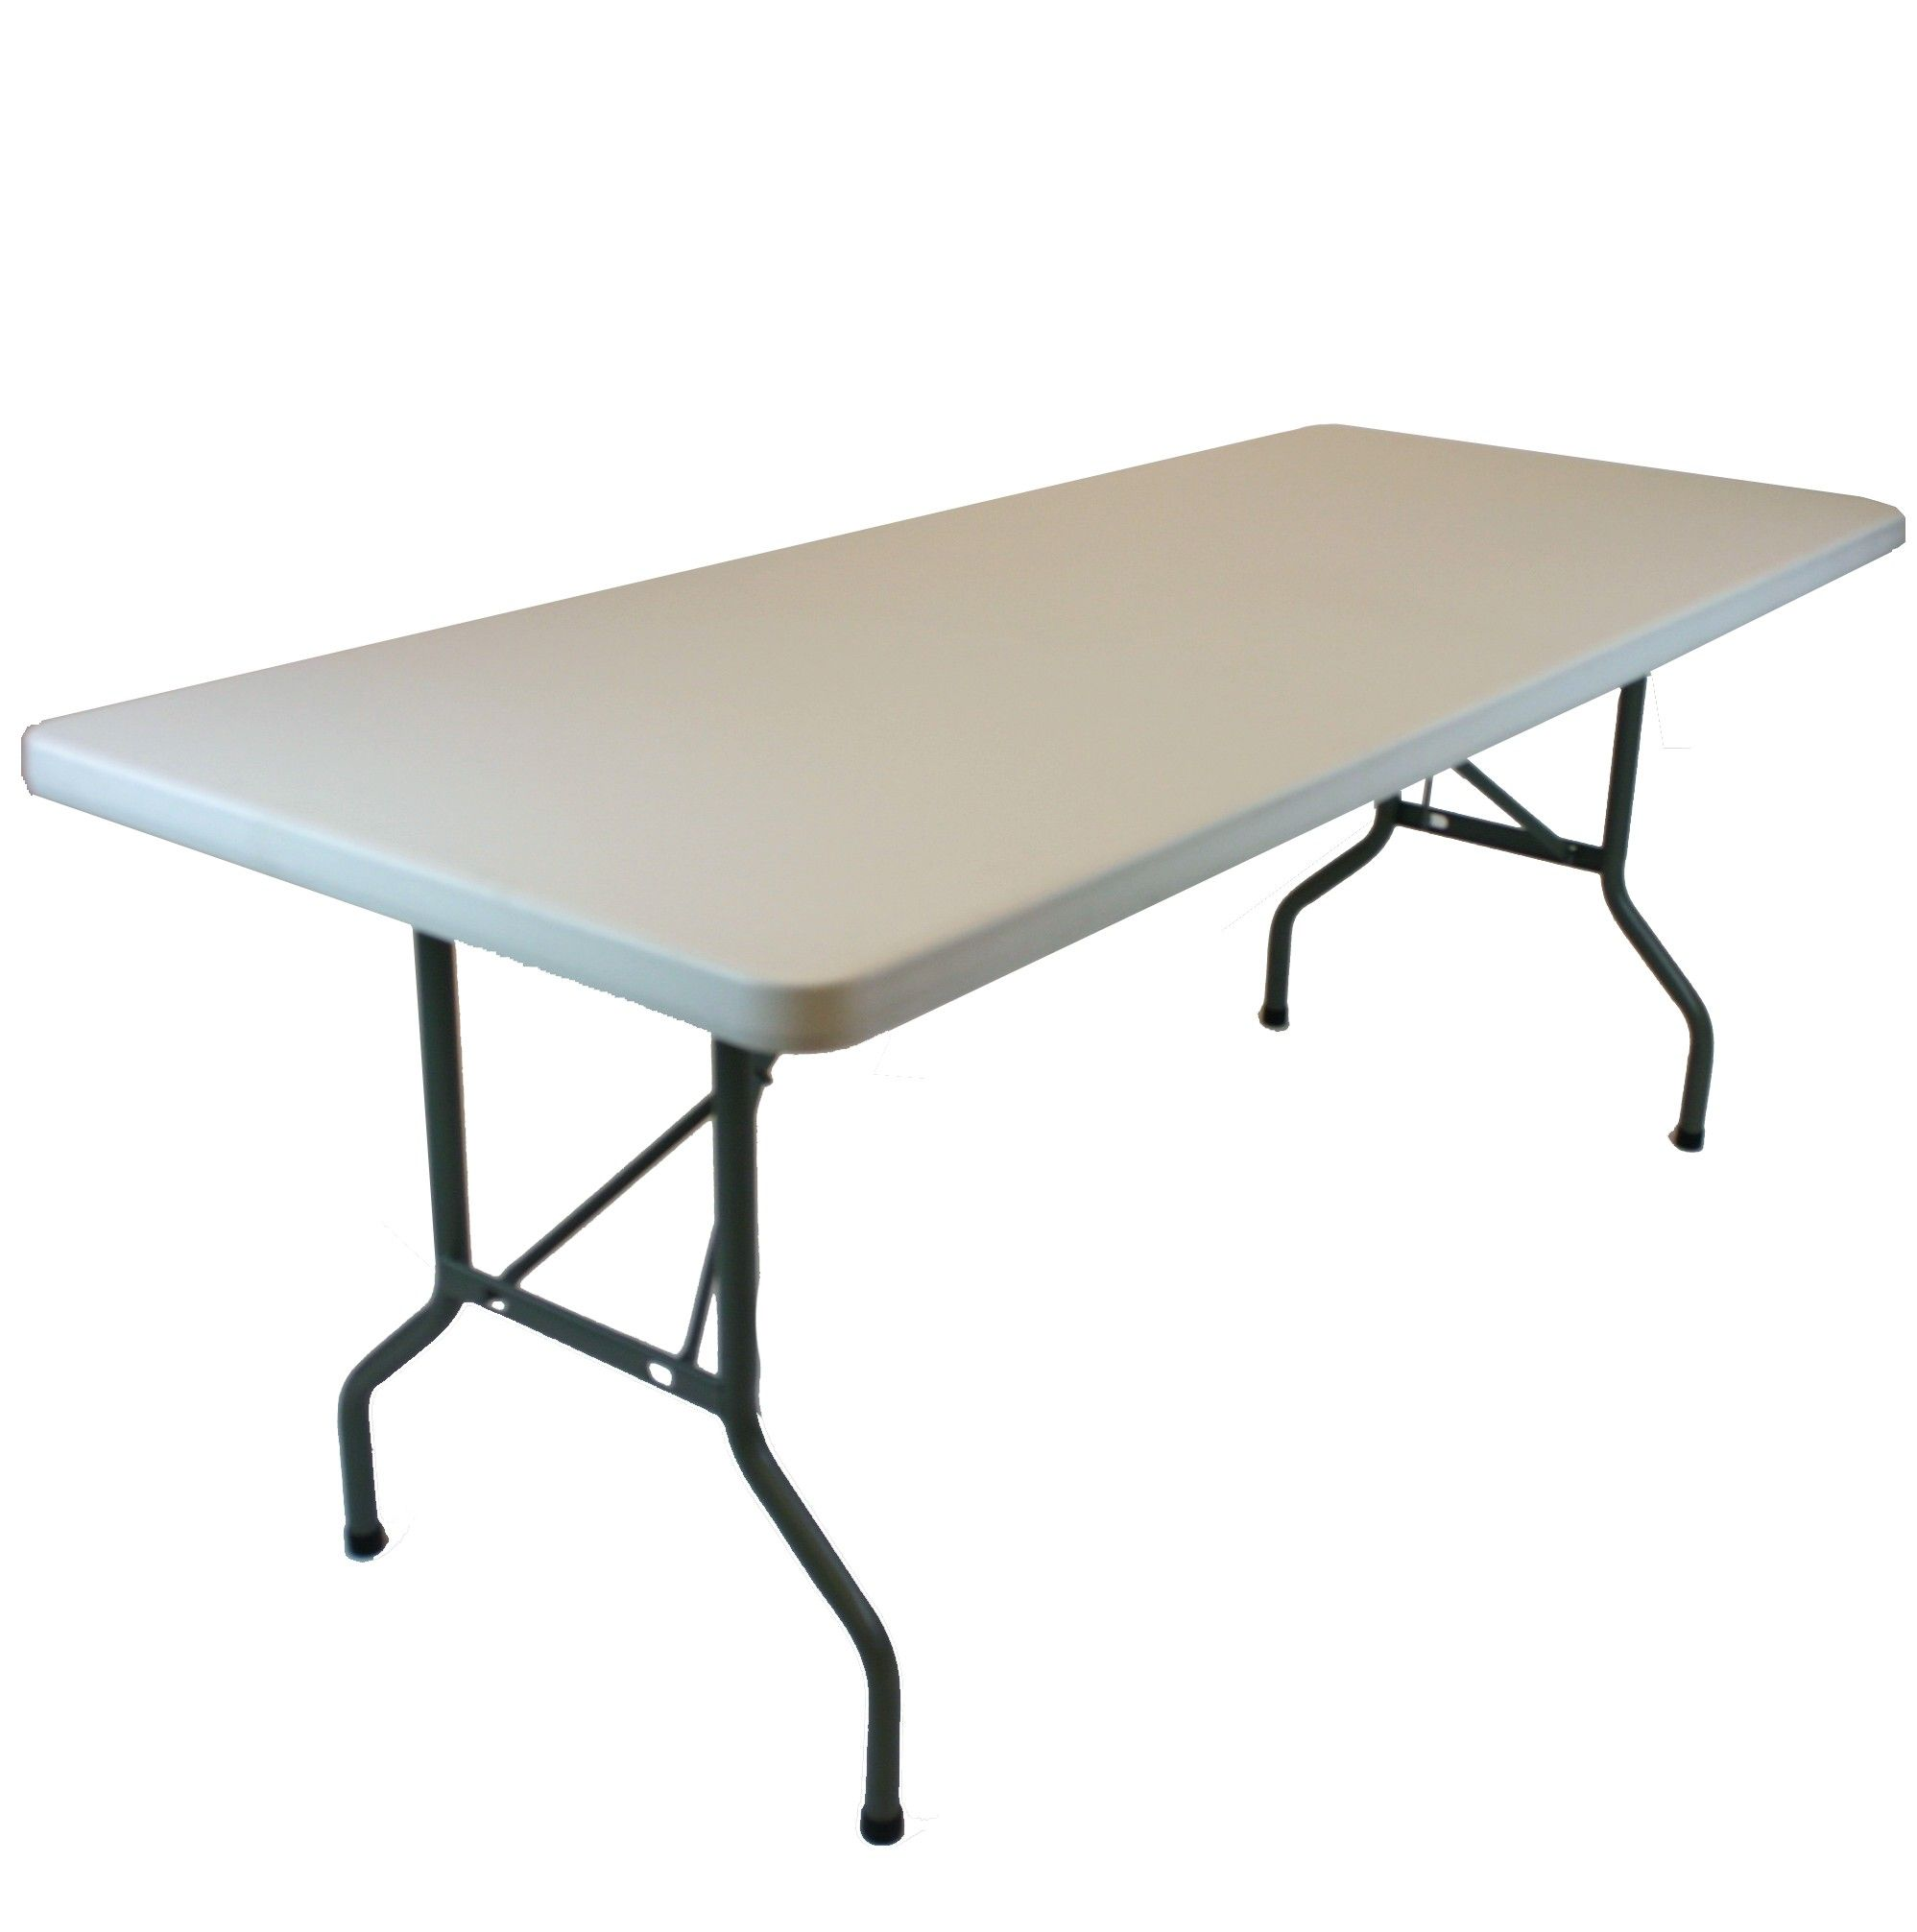 Titanpro Plastic Folding Table 6 X30 Banquet Folding Table Table Dining Table Setting